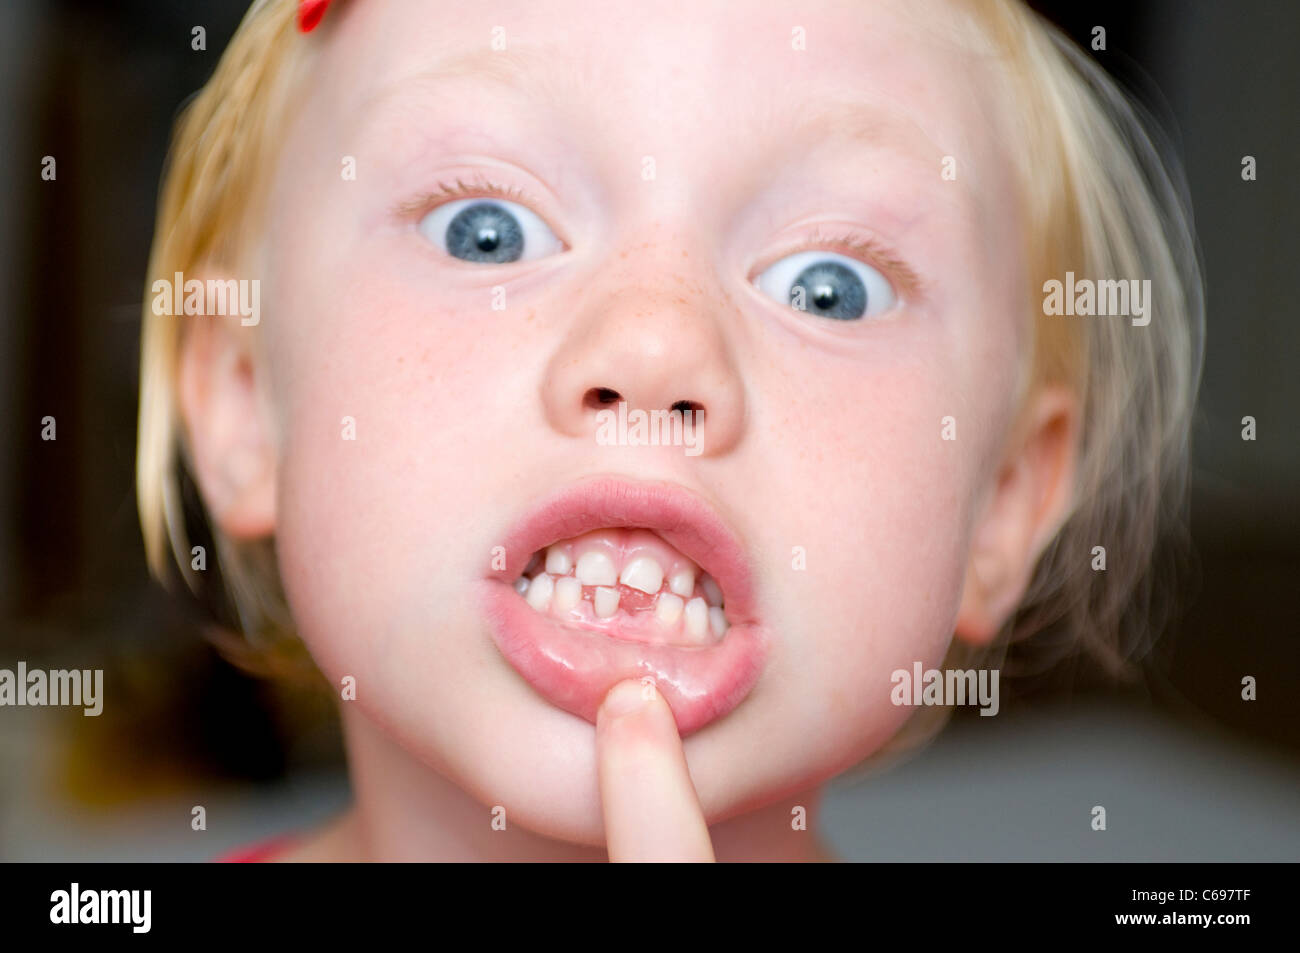 Young female child with first tooth missing - Stock Image